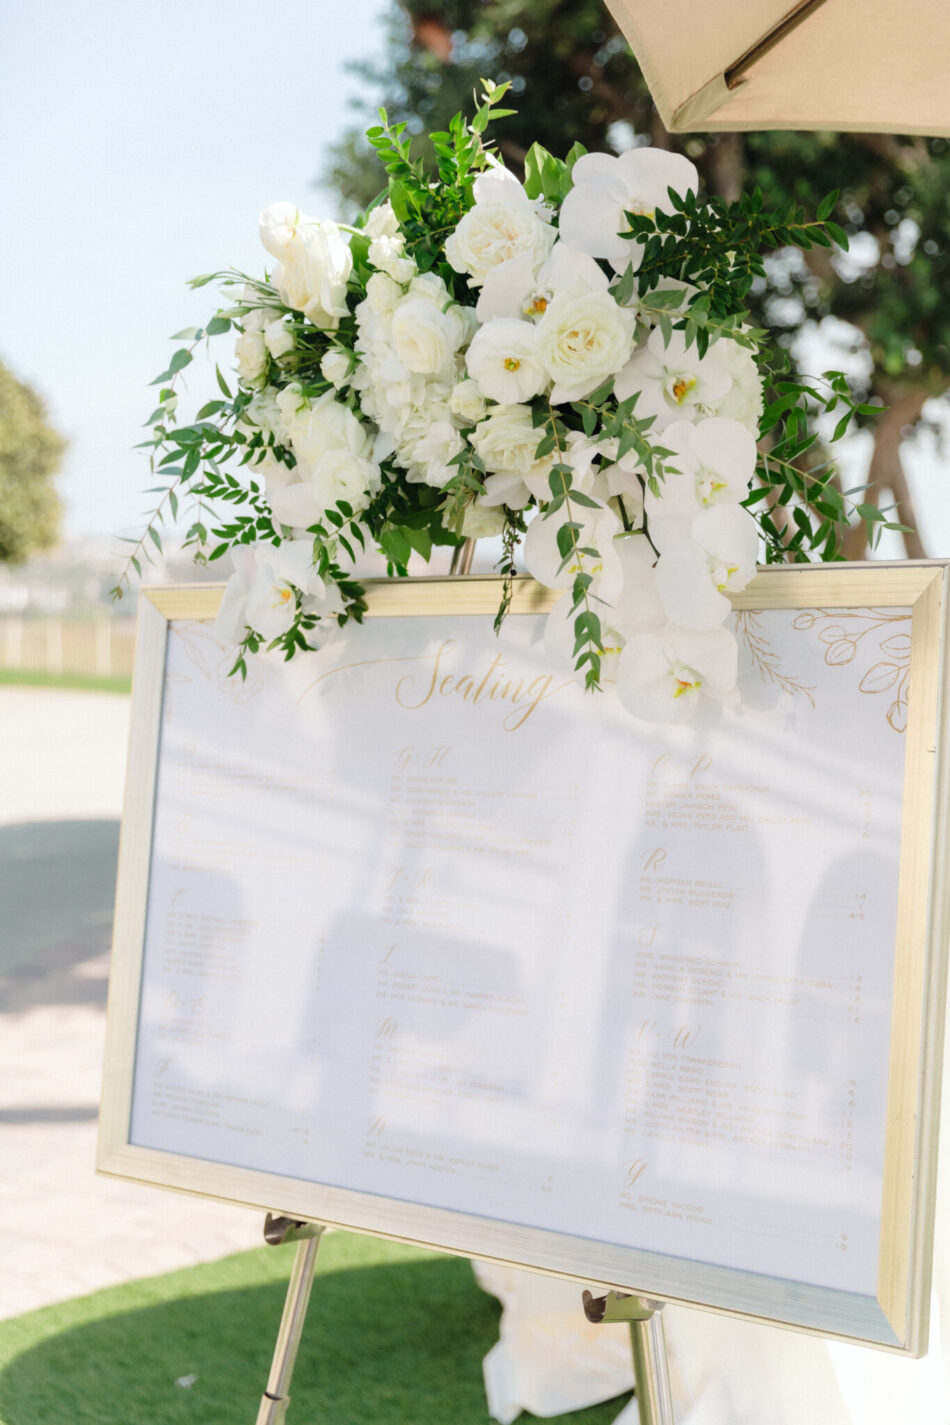 seating chart, floral-filled seating chart, beautiful floral-filled wedding, floral design, florist, wedding florist, wedding flowers, orange county weddings, orange county wedding florist, orange county florist, orange county floral design, flowers by cina